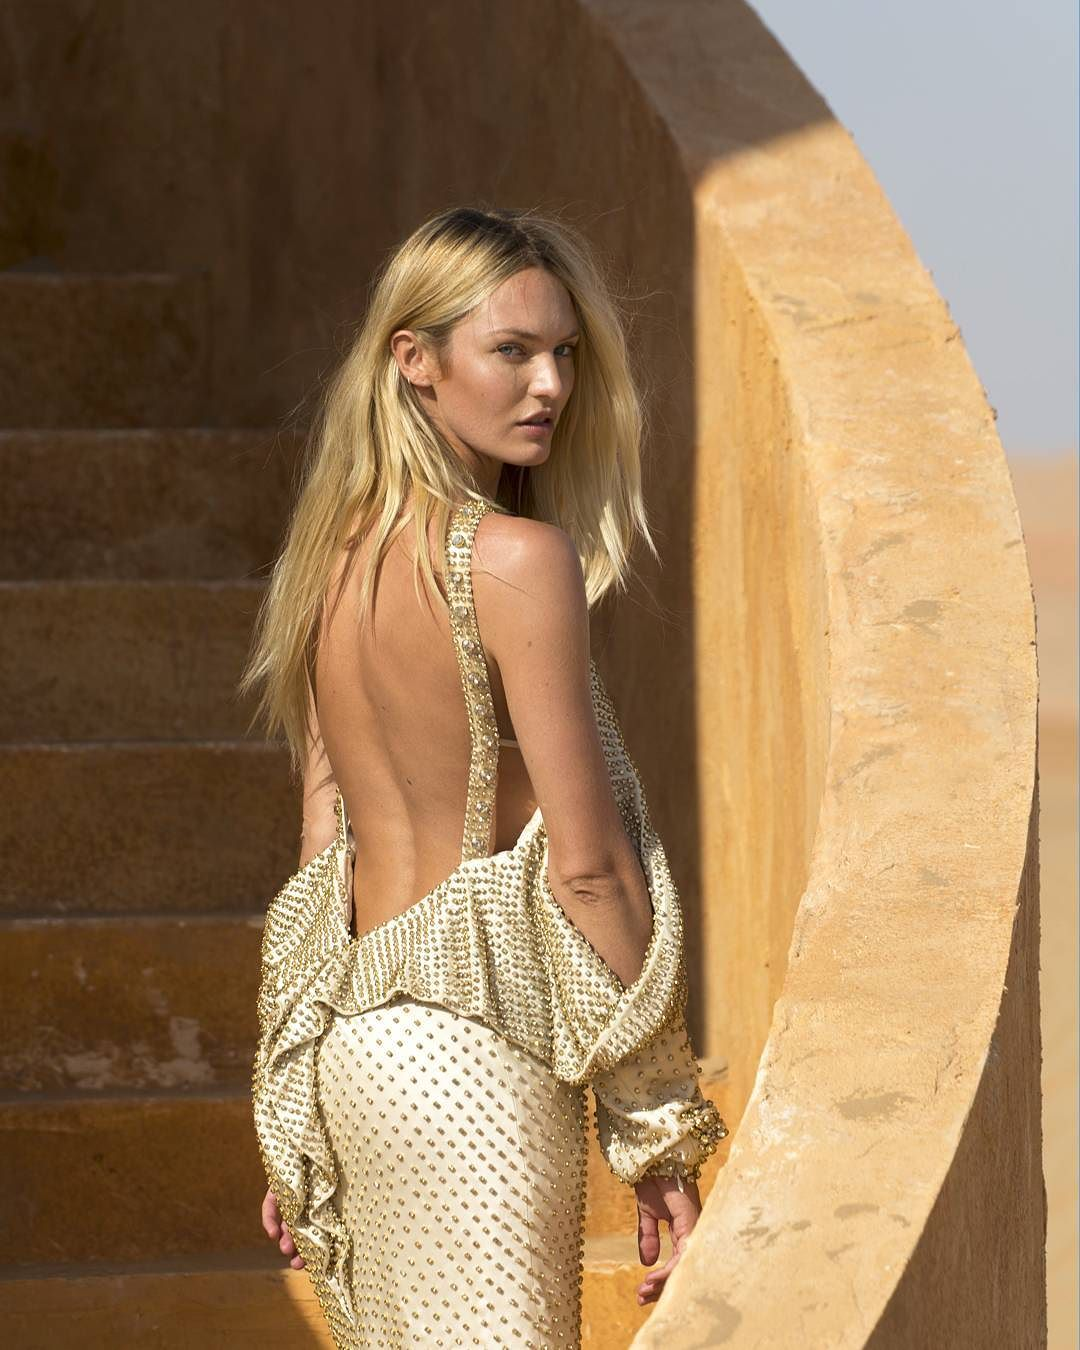 Candice Swanepoel photo #730006